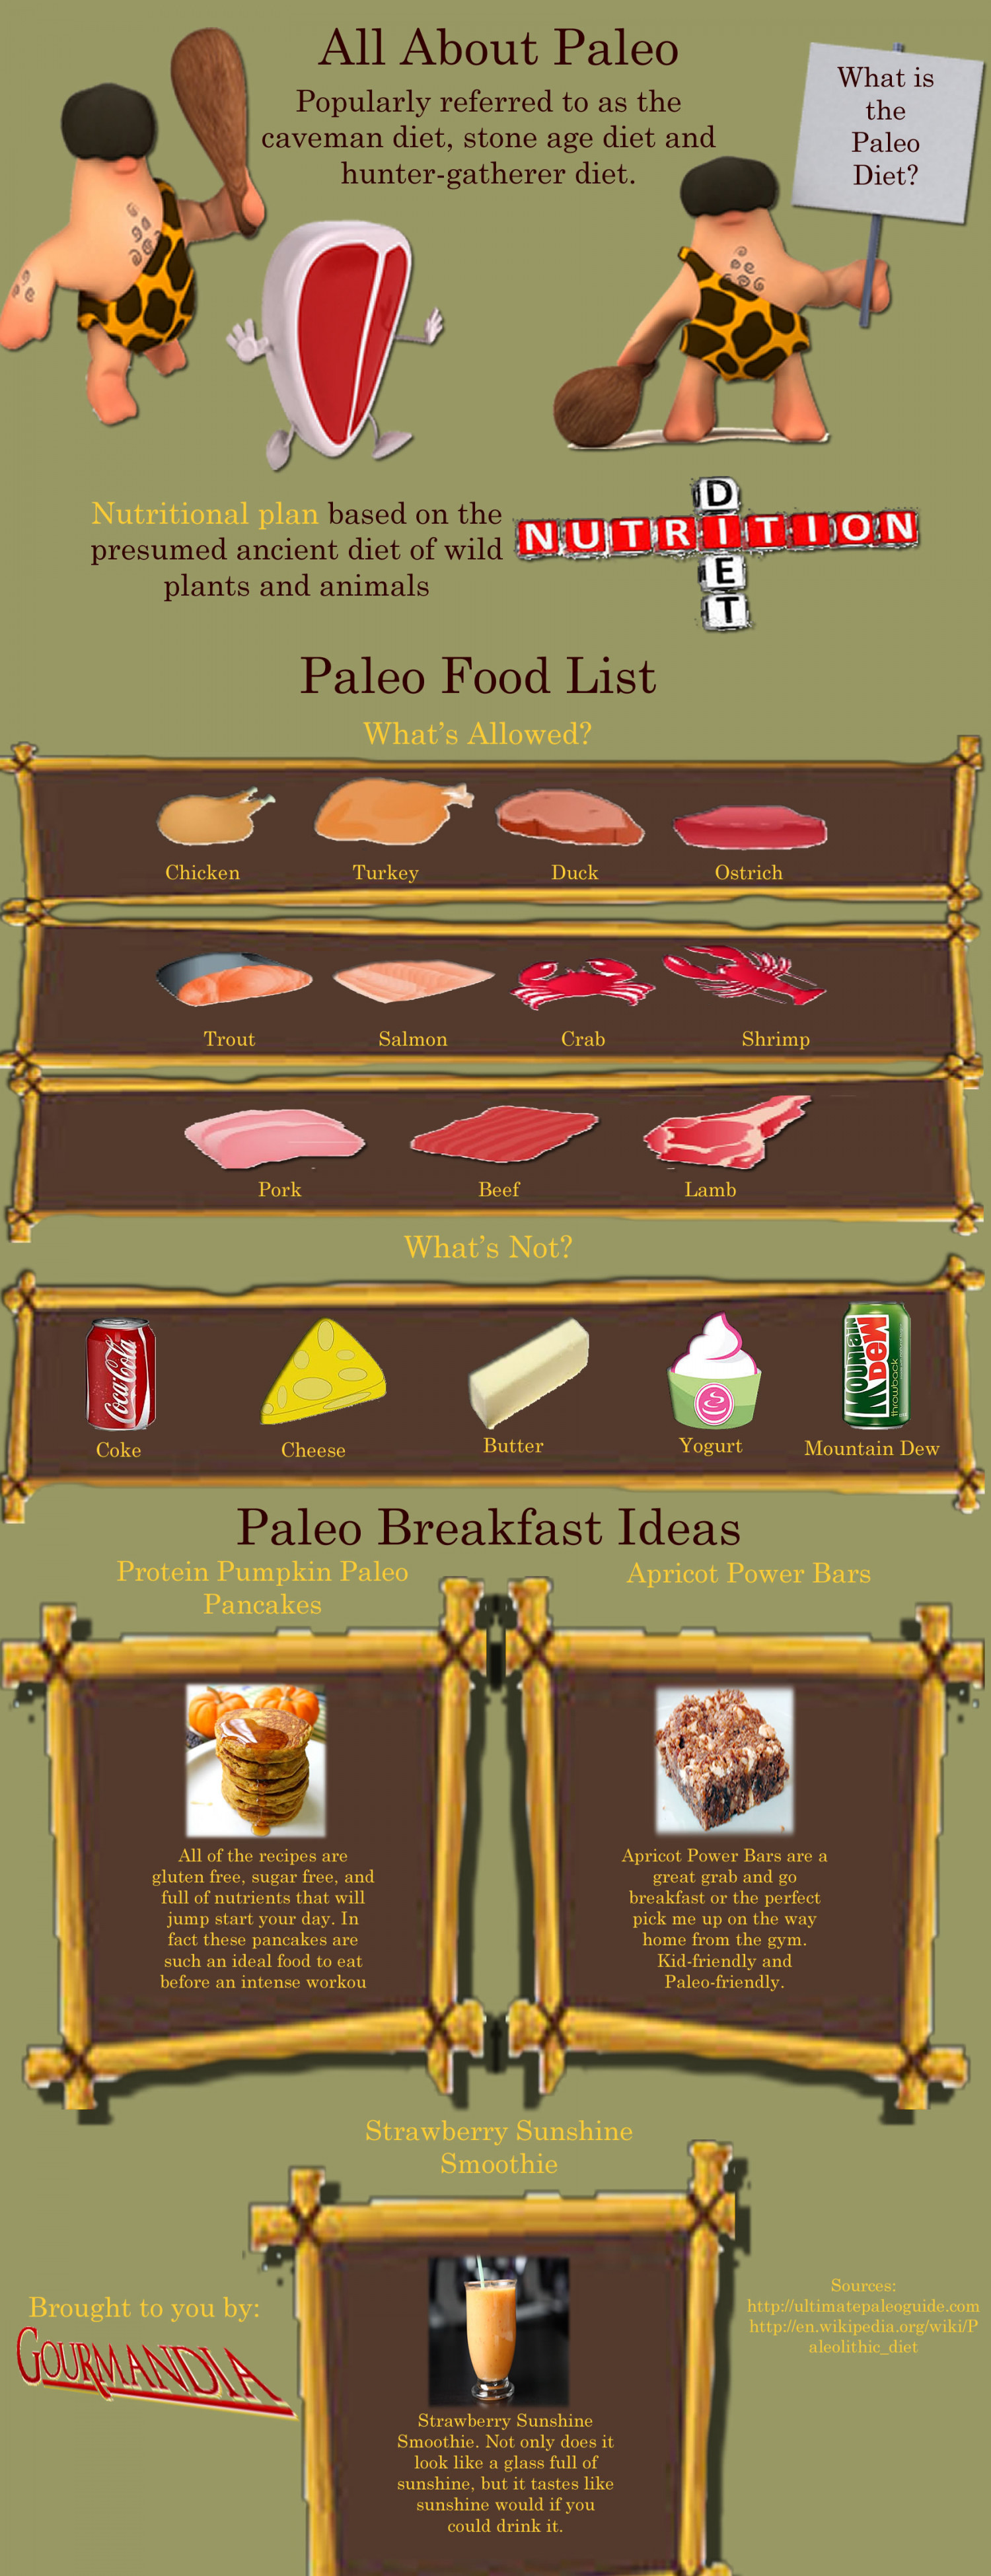 All About Paleo Infographic